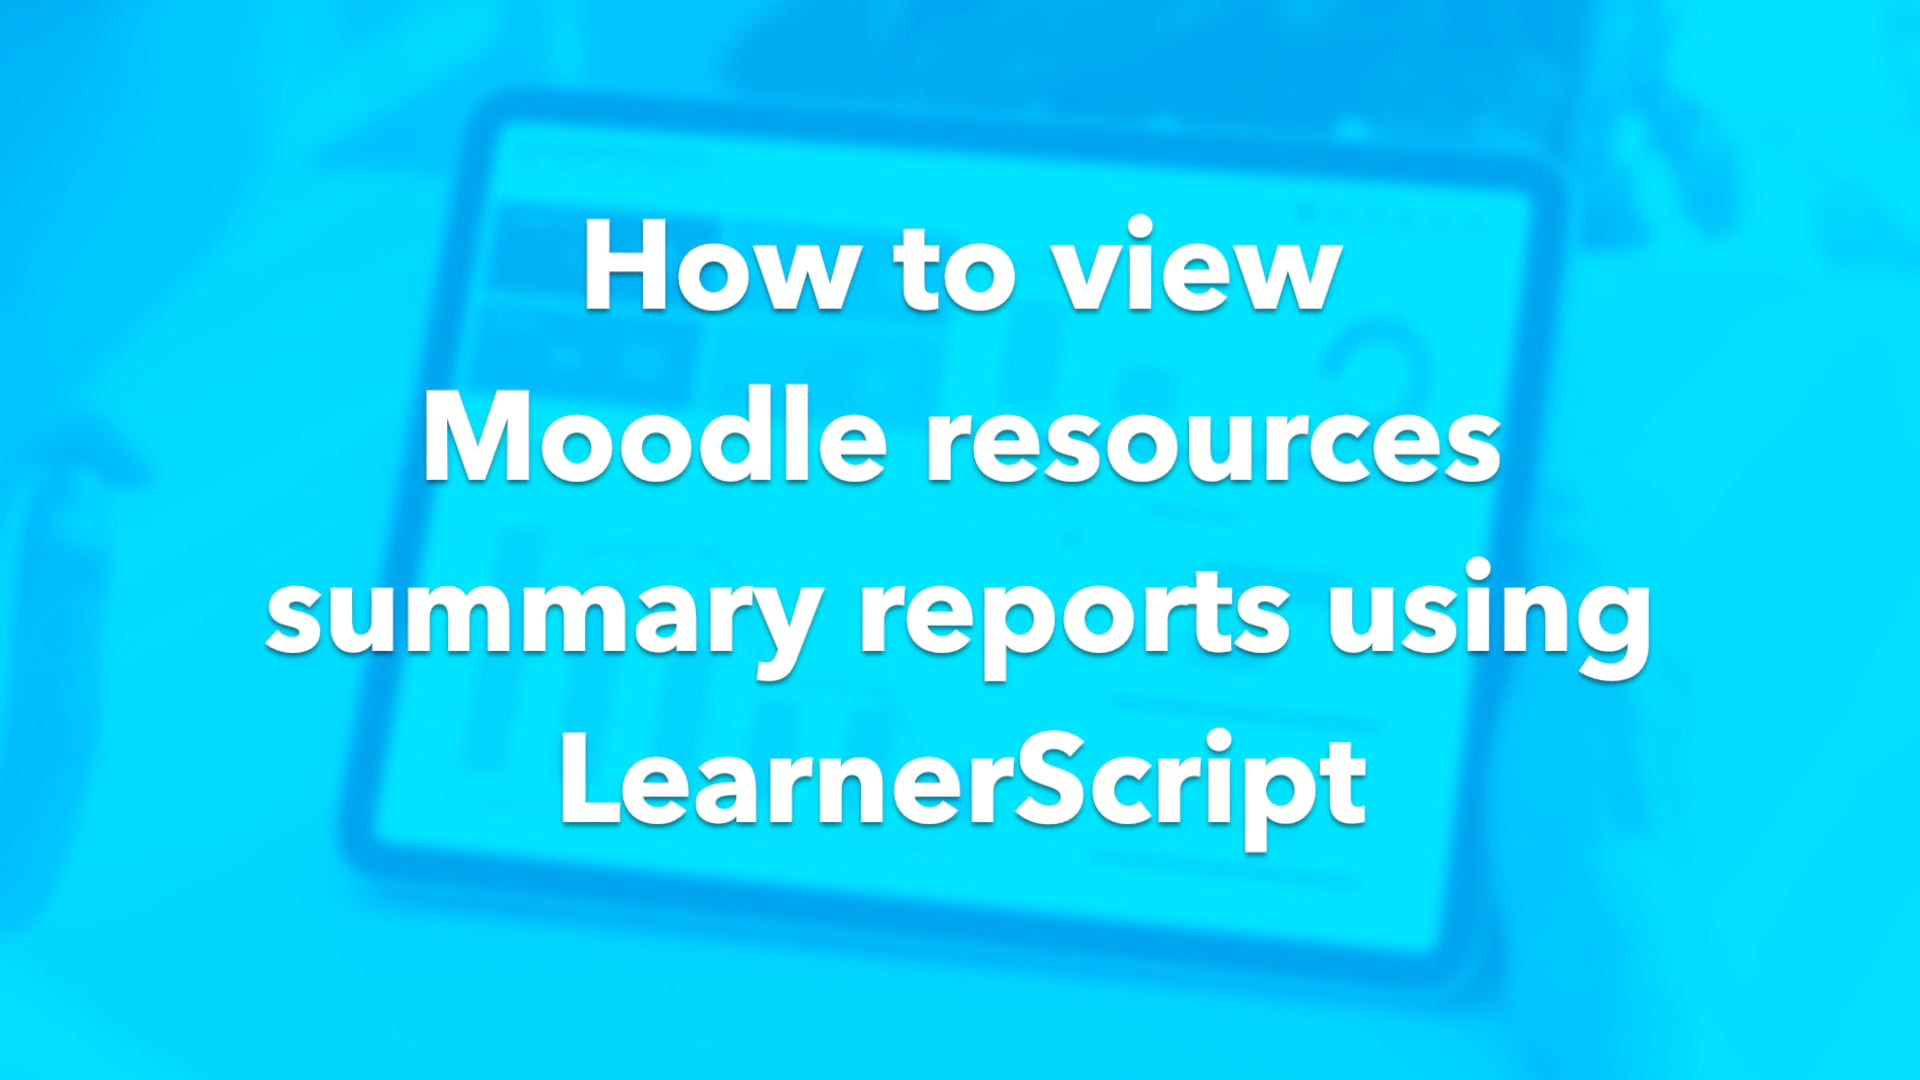 How to view Moodle Resources LearnerScript